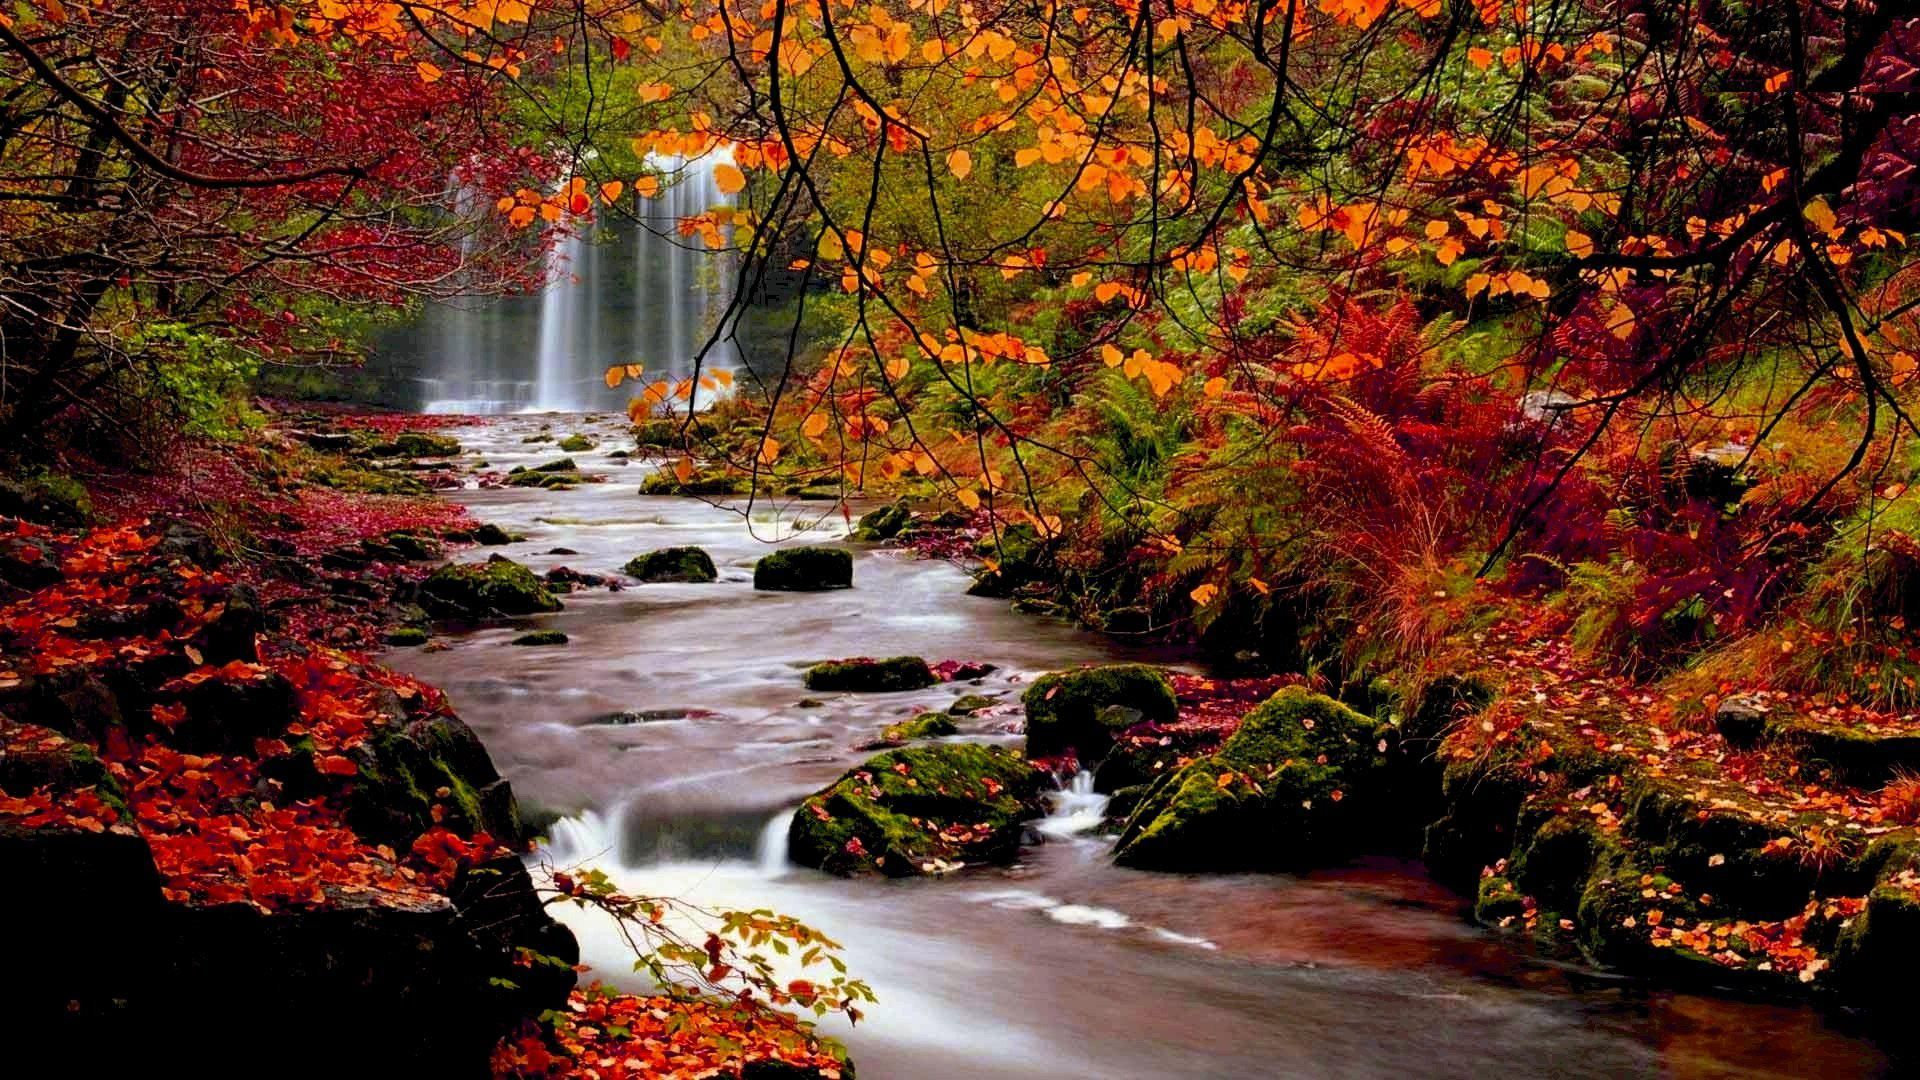 Free Fall Autumn Leaves Wallpaper For Desktop Jpeg 1920 1080 Lanskap Pemandangan Air Terjun